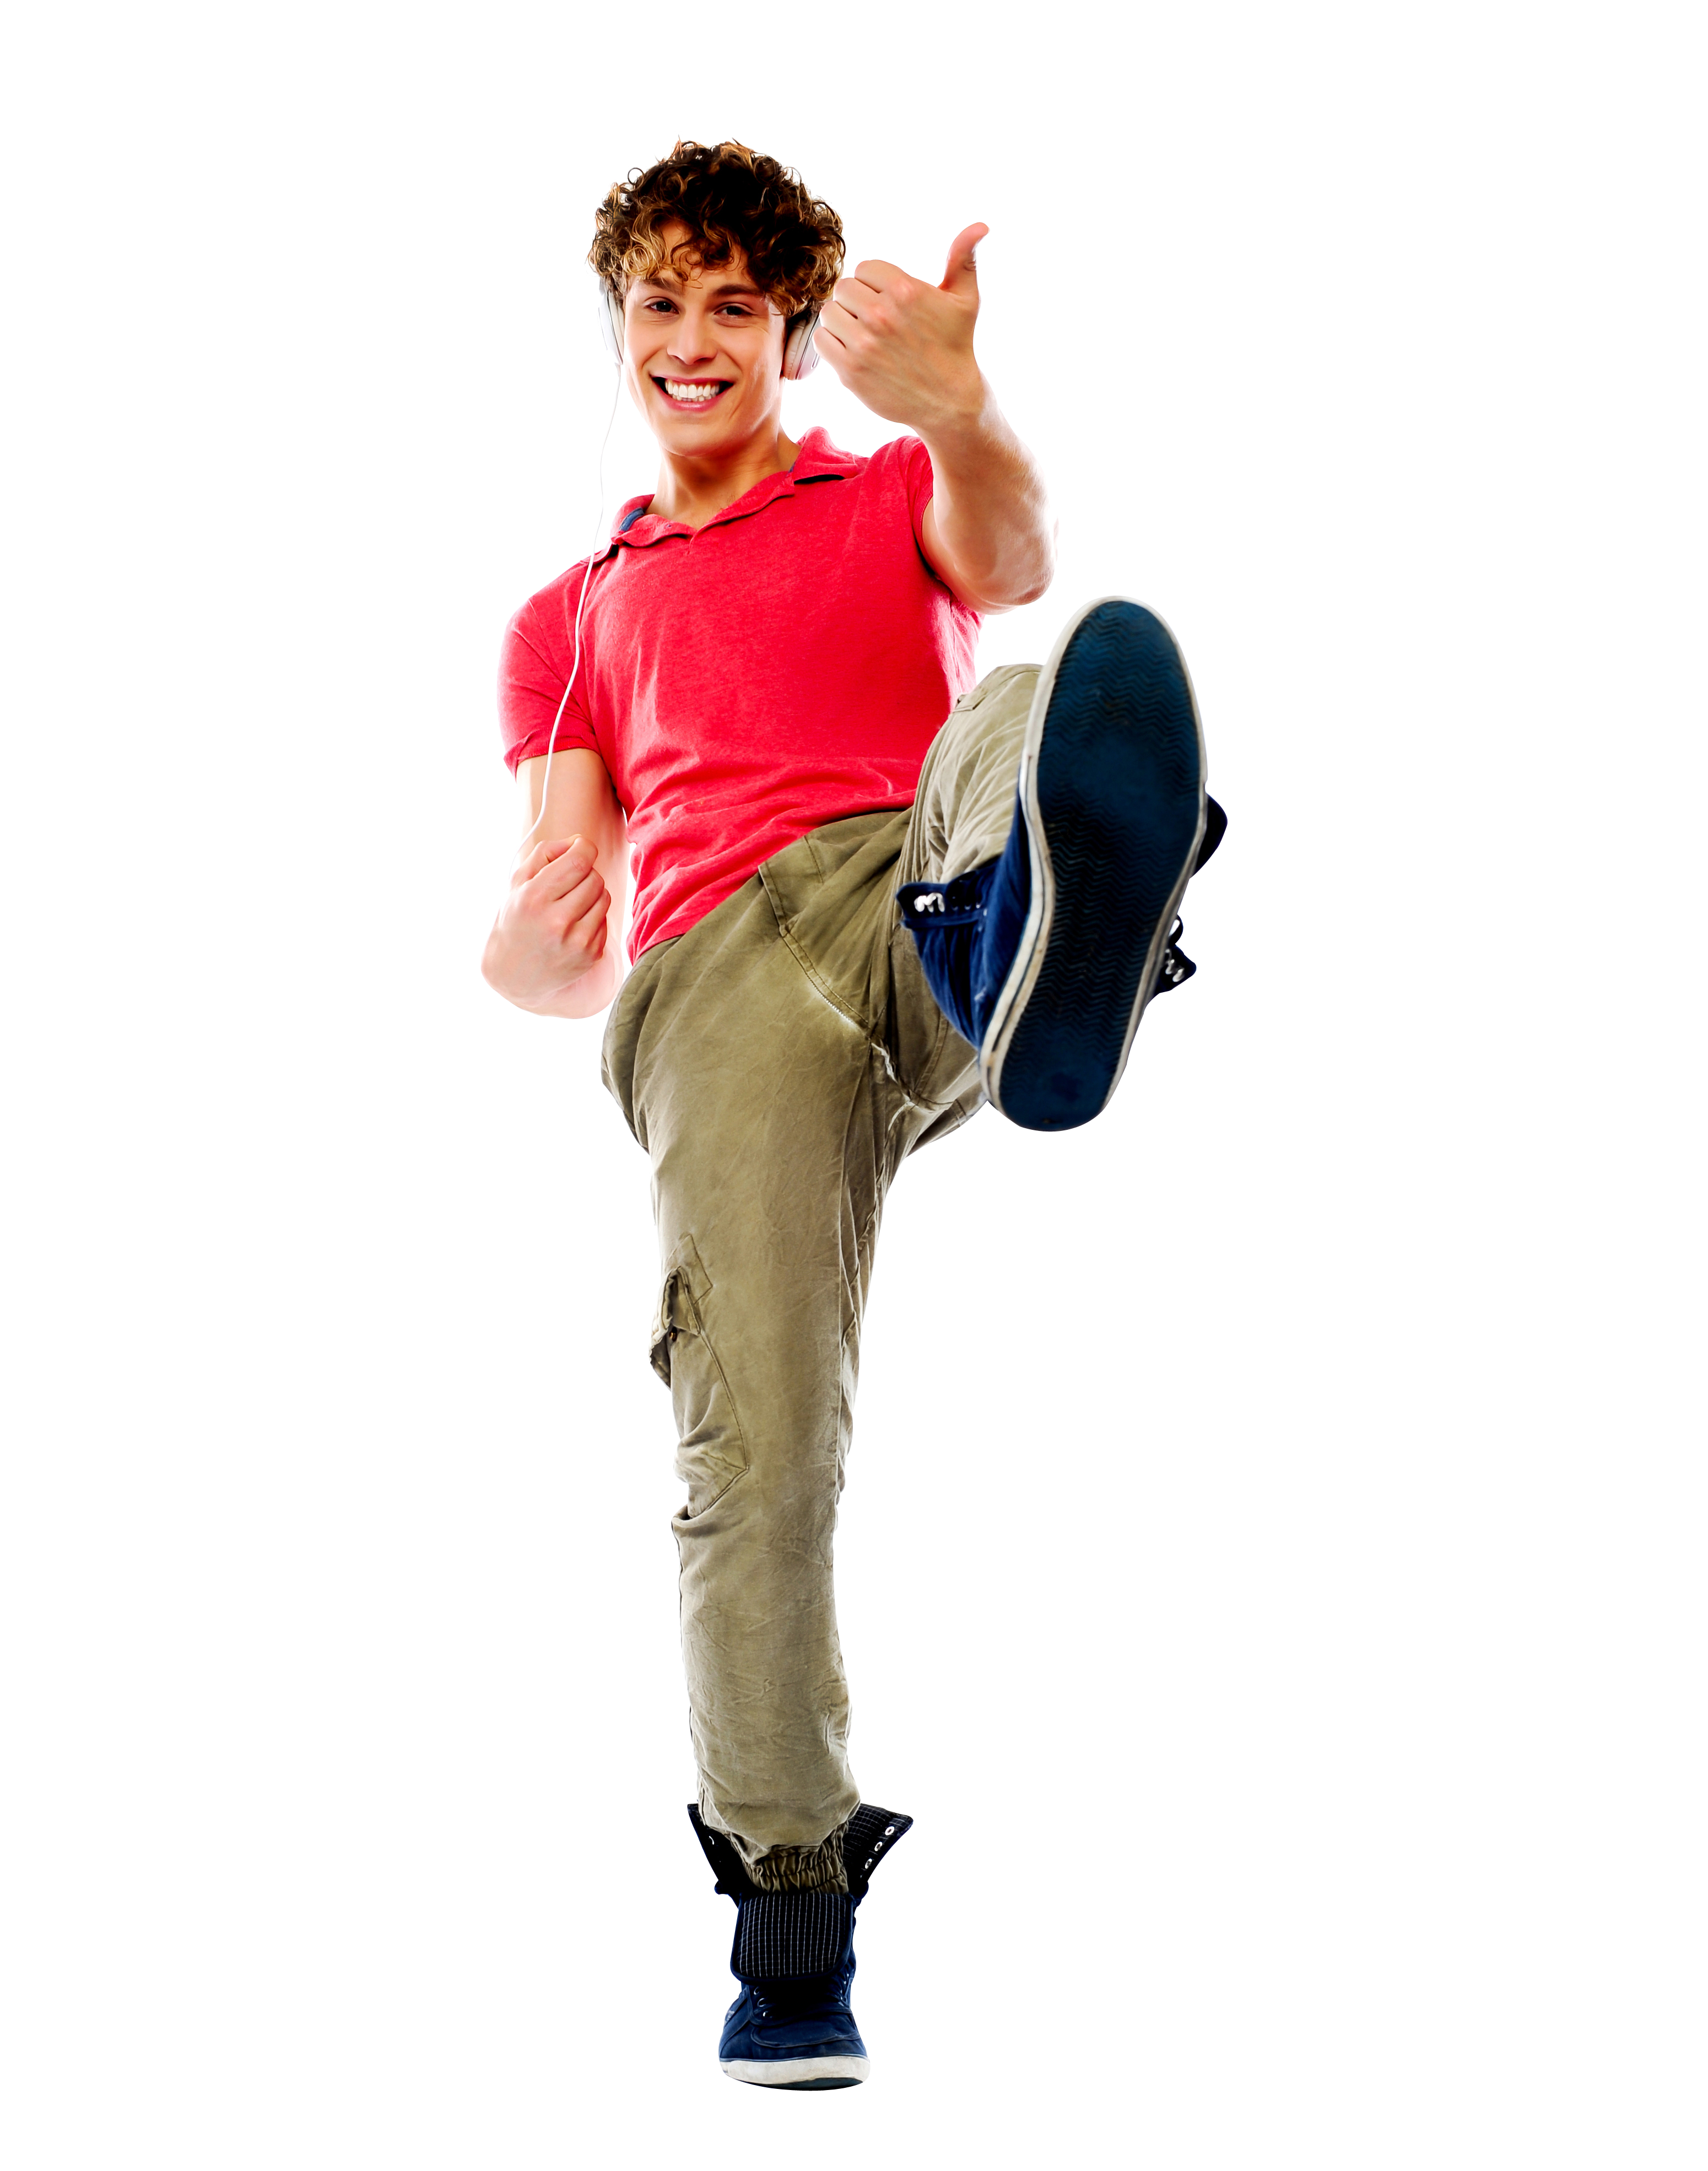 Cool Guy PNG Image.